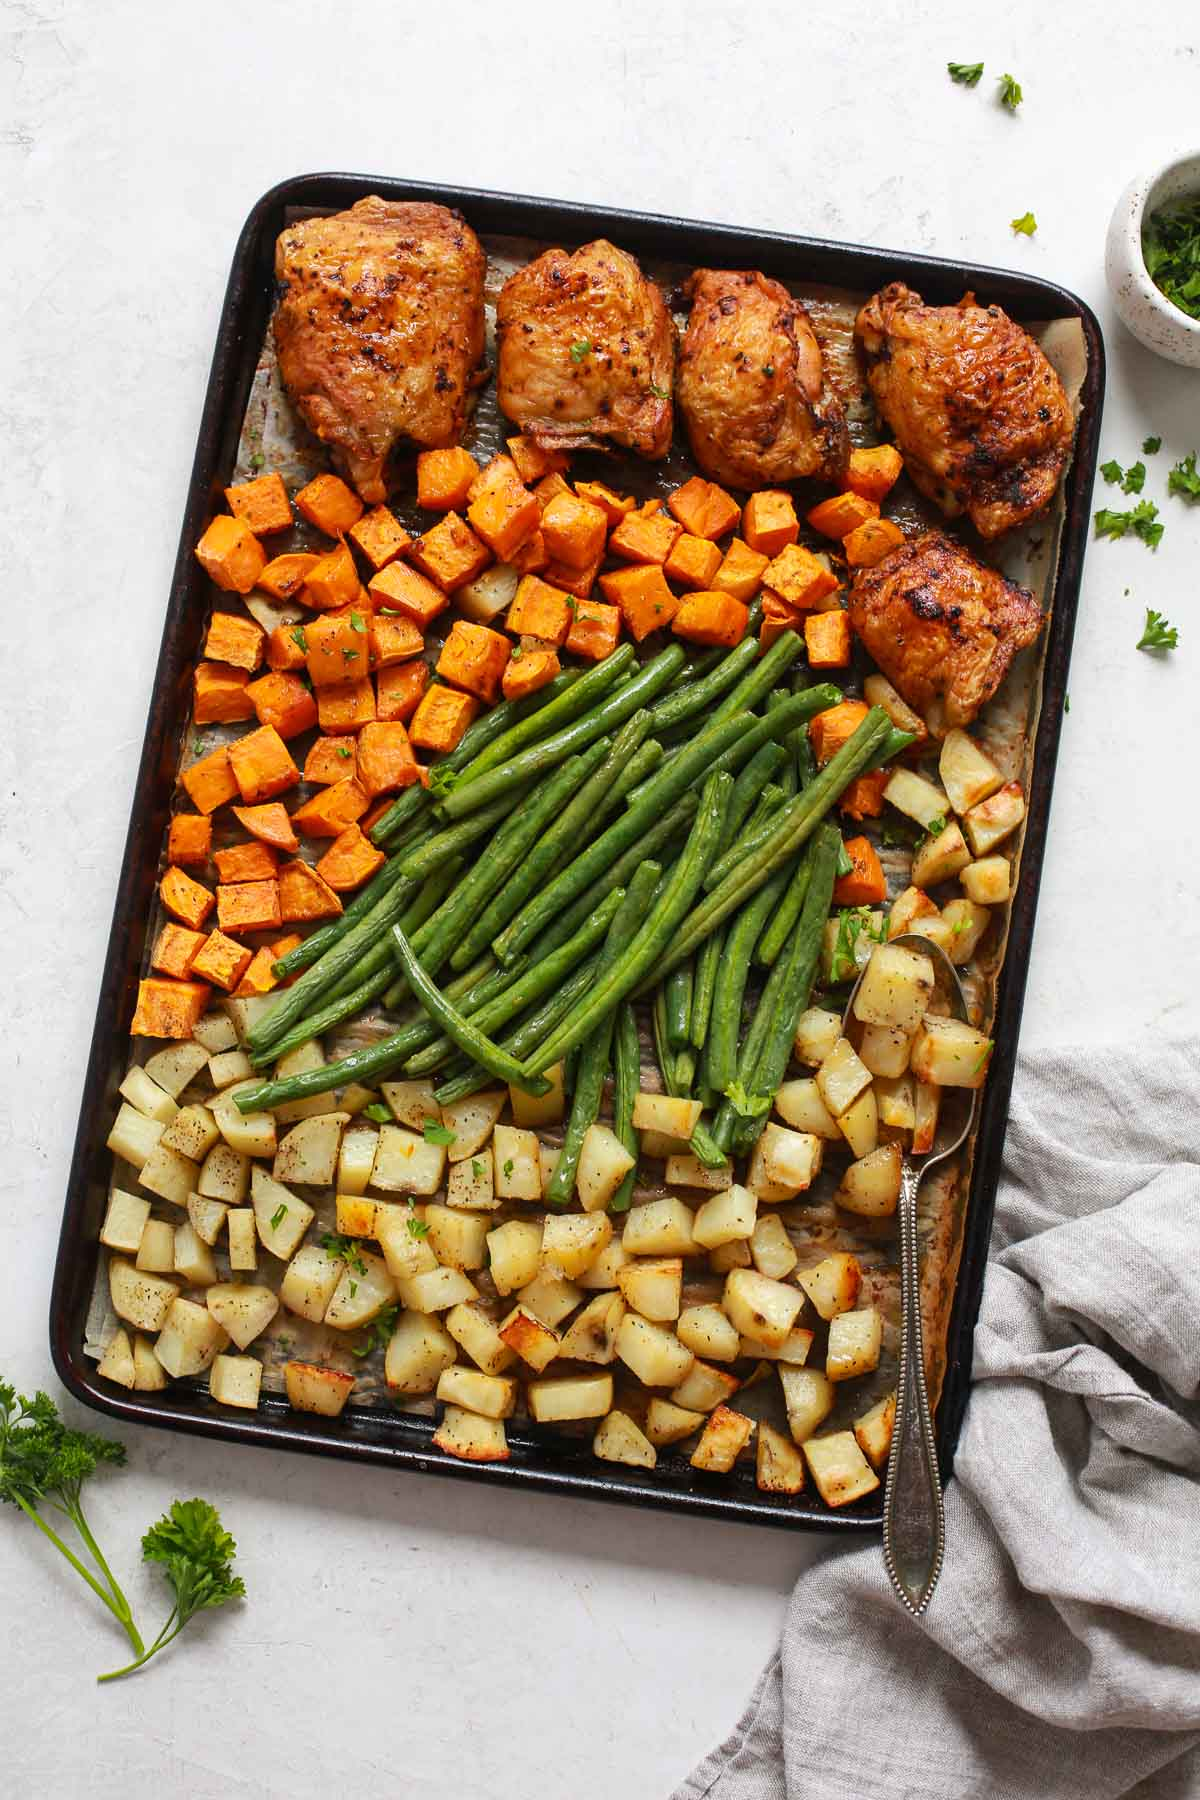 overhead view of a baking sheet containing vegetables and chicken thighs